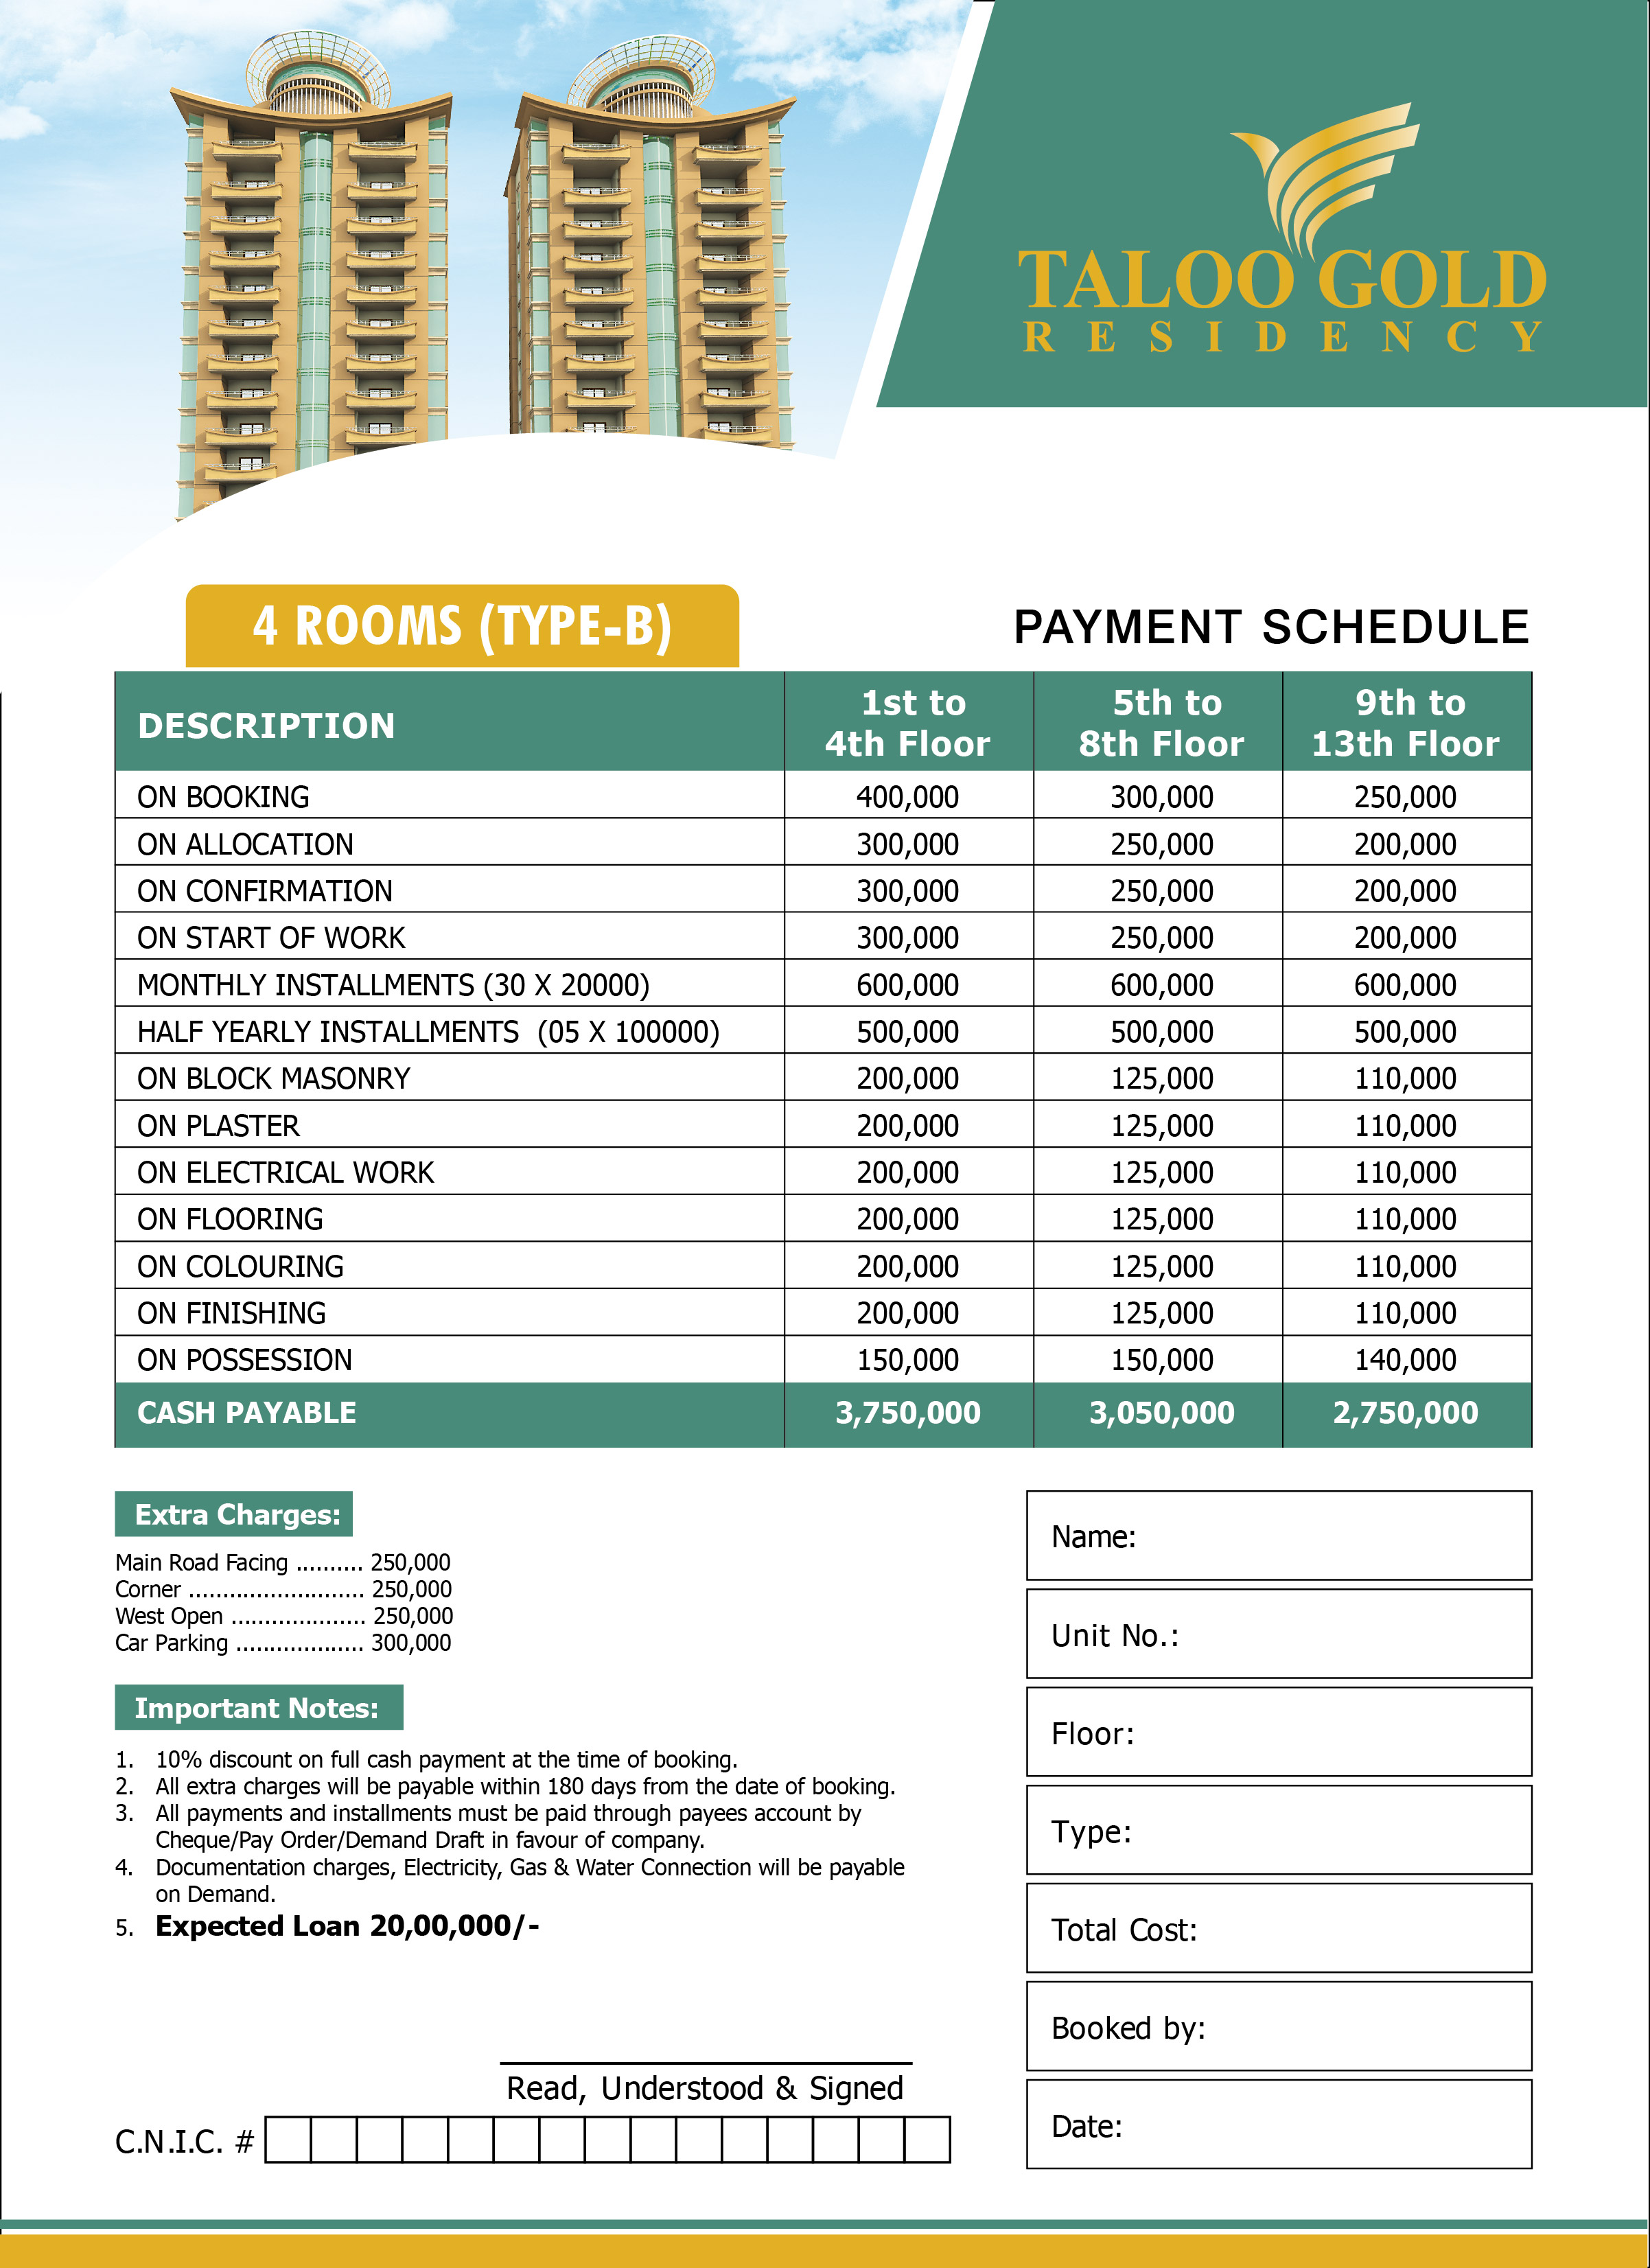 Taloo-Gold-Residency-Pay-Sch-4-ROOMS-Type-B-30-3-2017-01